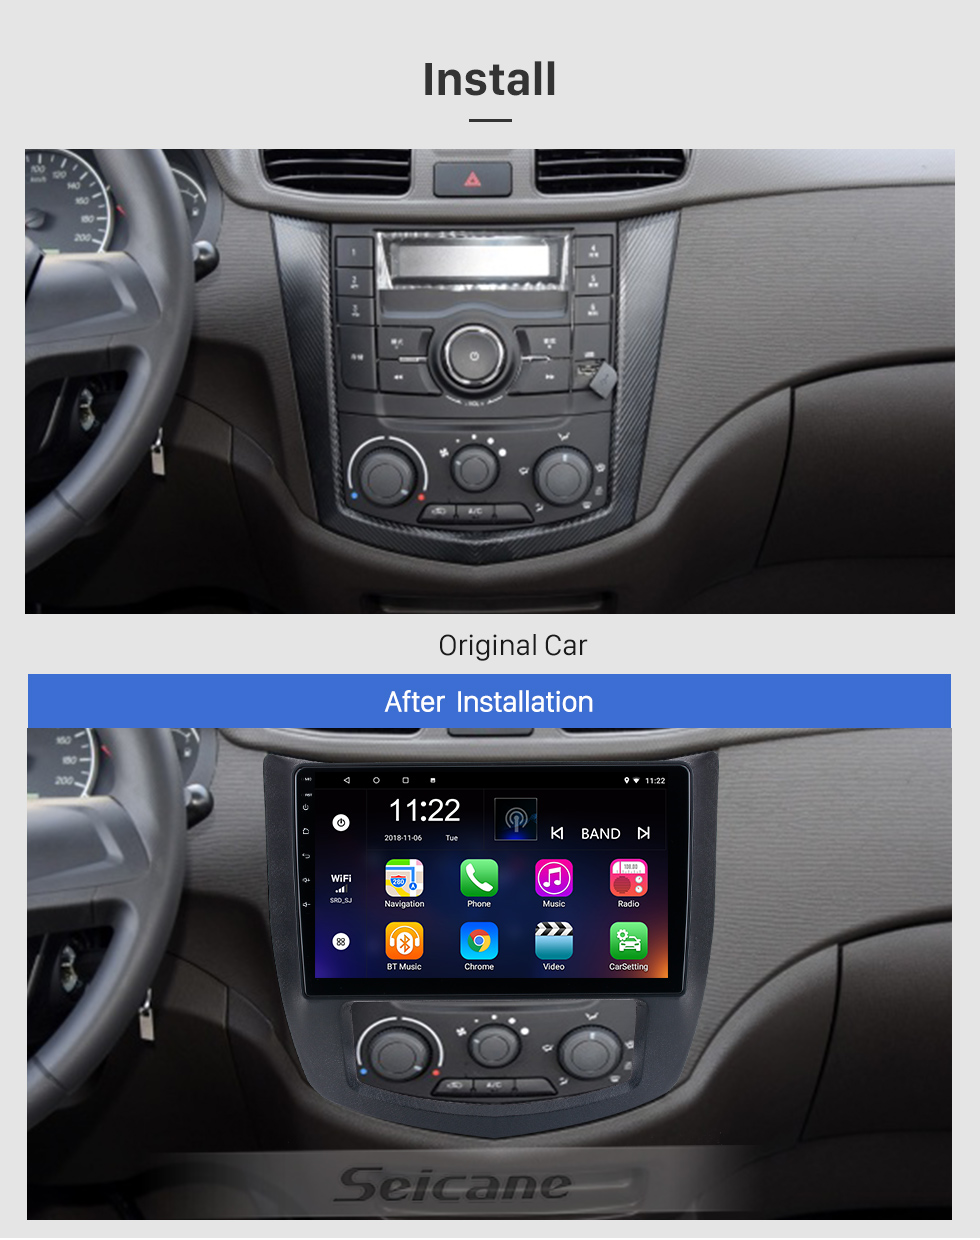 Seicane 10.1 inch Android 10.0 for 2013-2017 SGMW Hongguang Radio GPS Navigation System With HD Touchscreen Bluetooth support Carplay OBD2